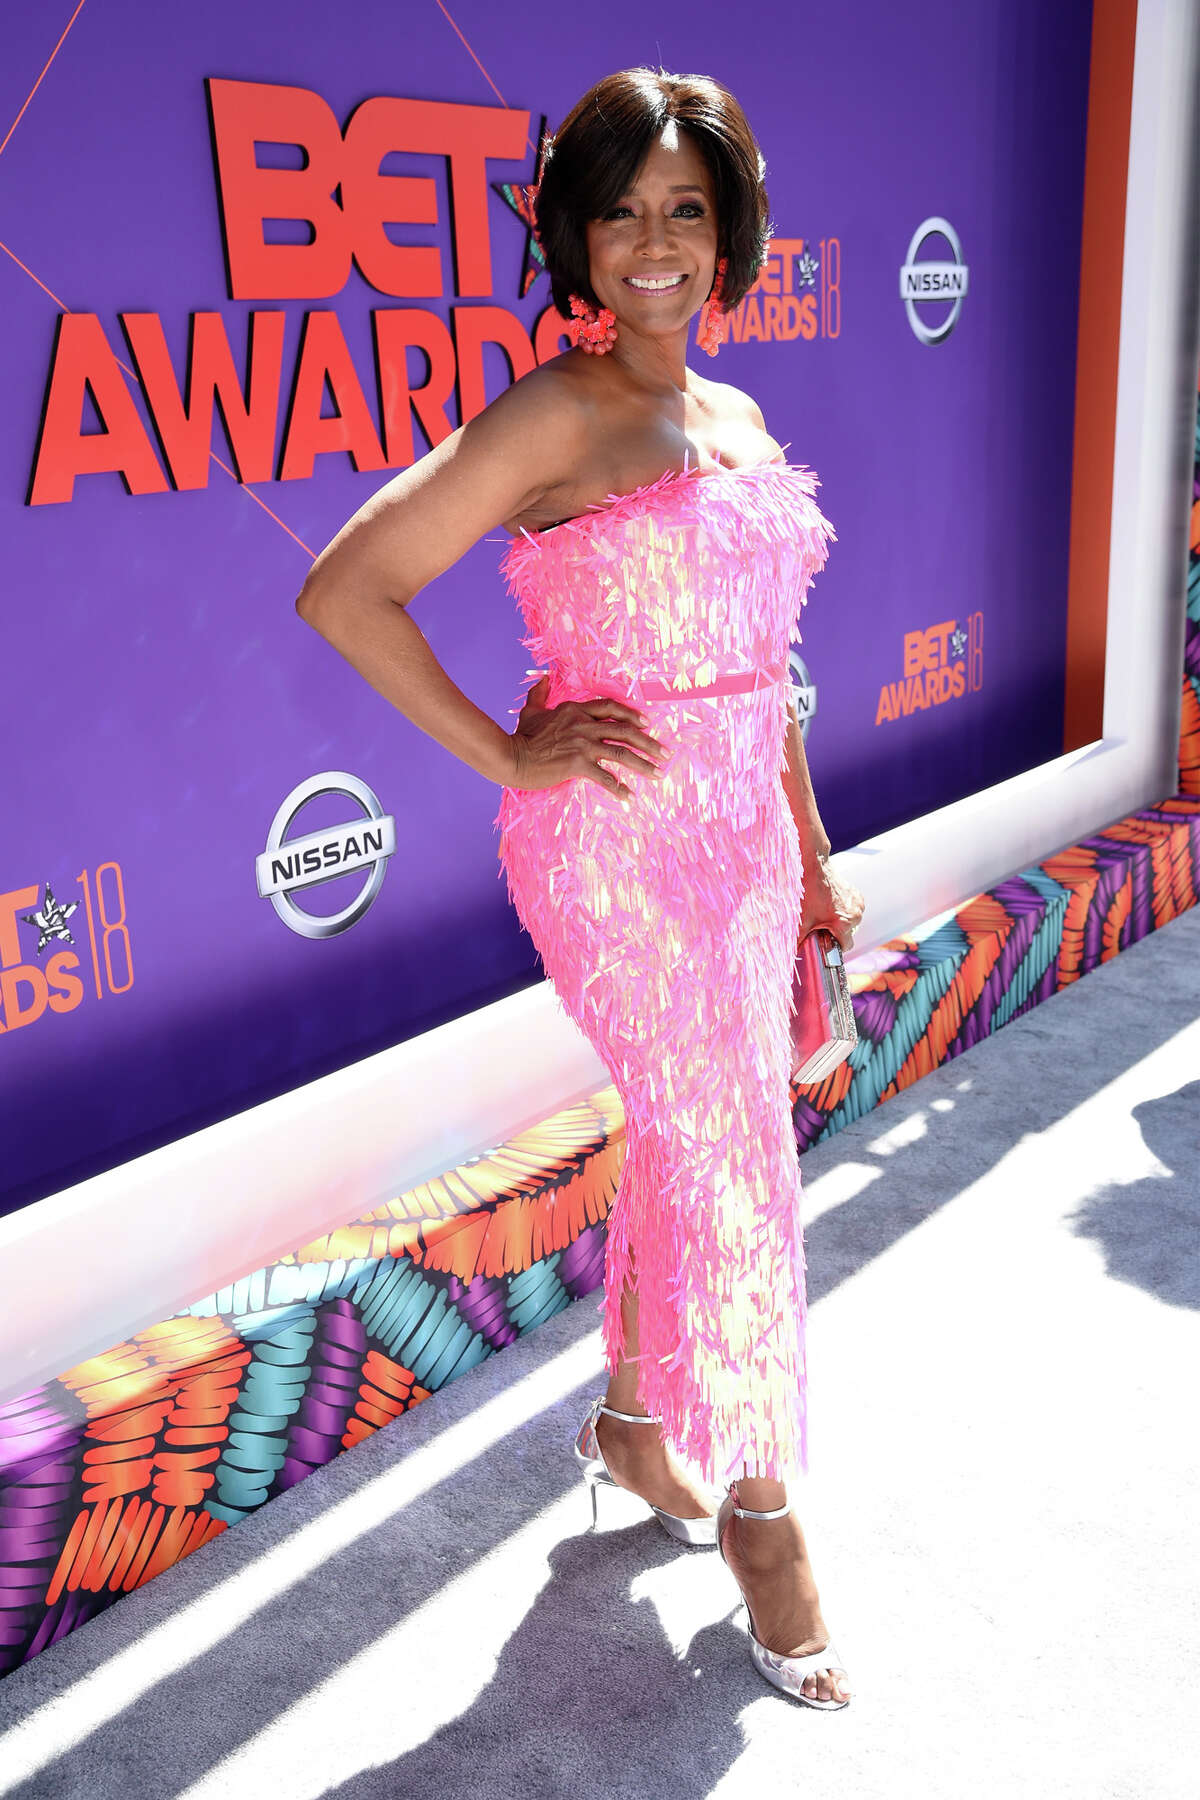 LOS ANGELES, CA - JUNE 24: Margaret Avery attends the 2018 BET Awards at Microsoft Theater on June 24, 2018 in Los Angeles, California. (Photo by Kevin Mazur/Getty Images for BET)